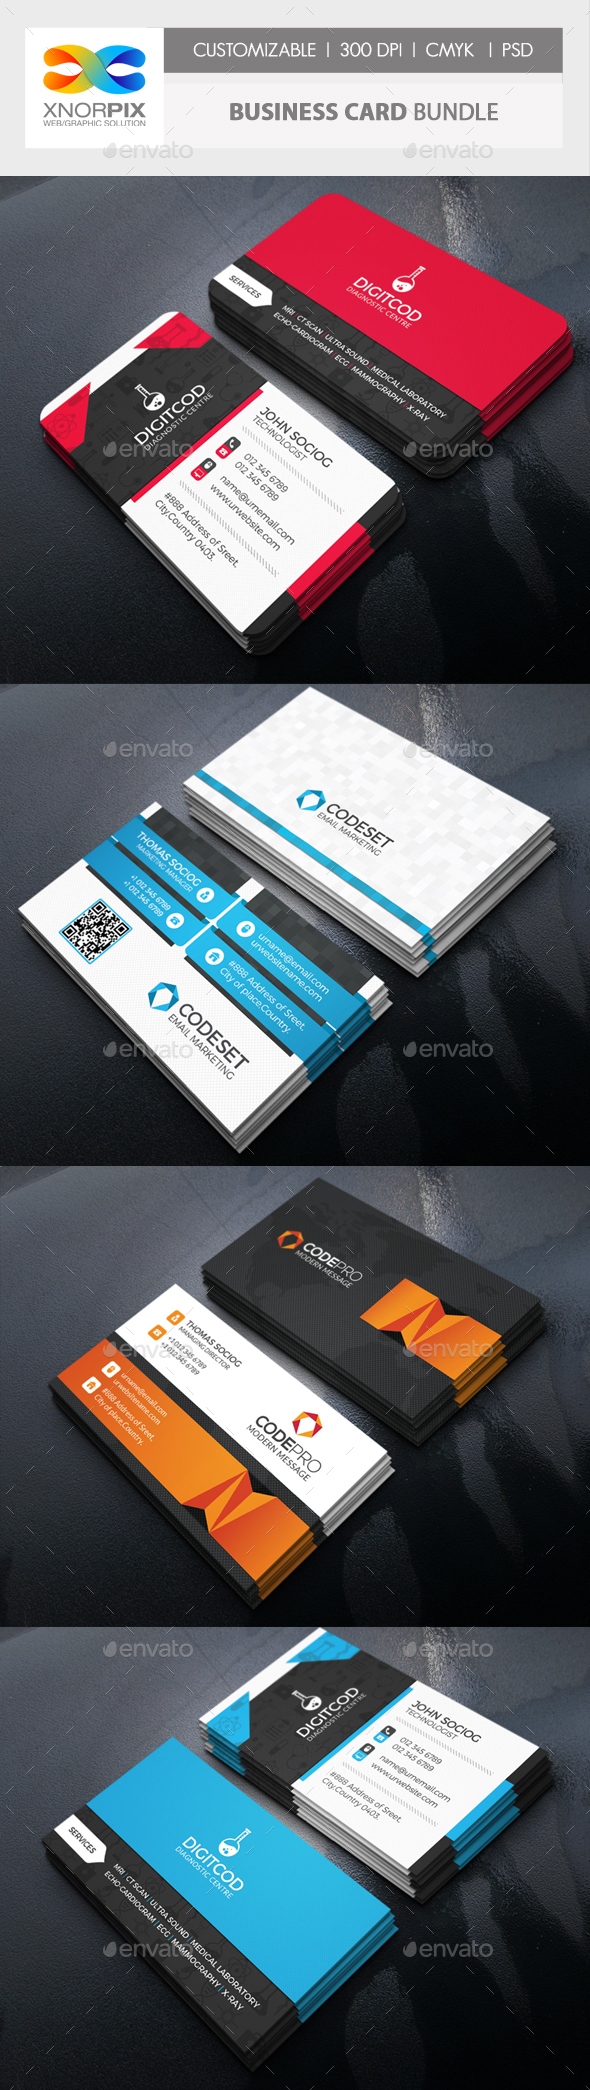 Business Card Bundle 3 in 1-Vol 63 - Corporate Business Cards